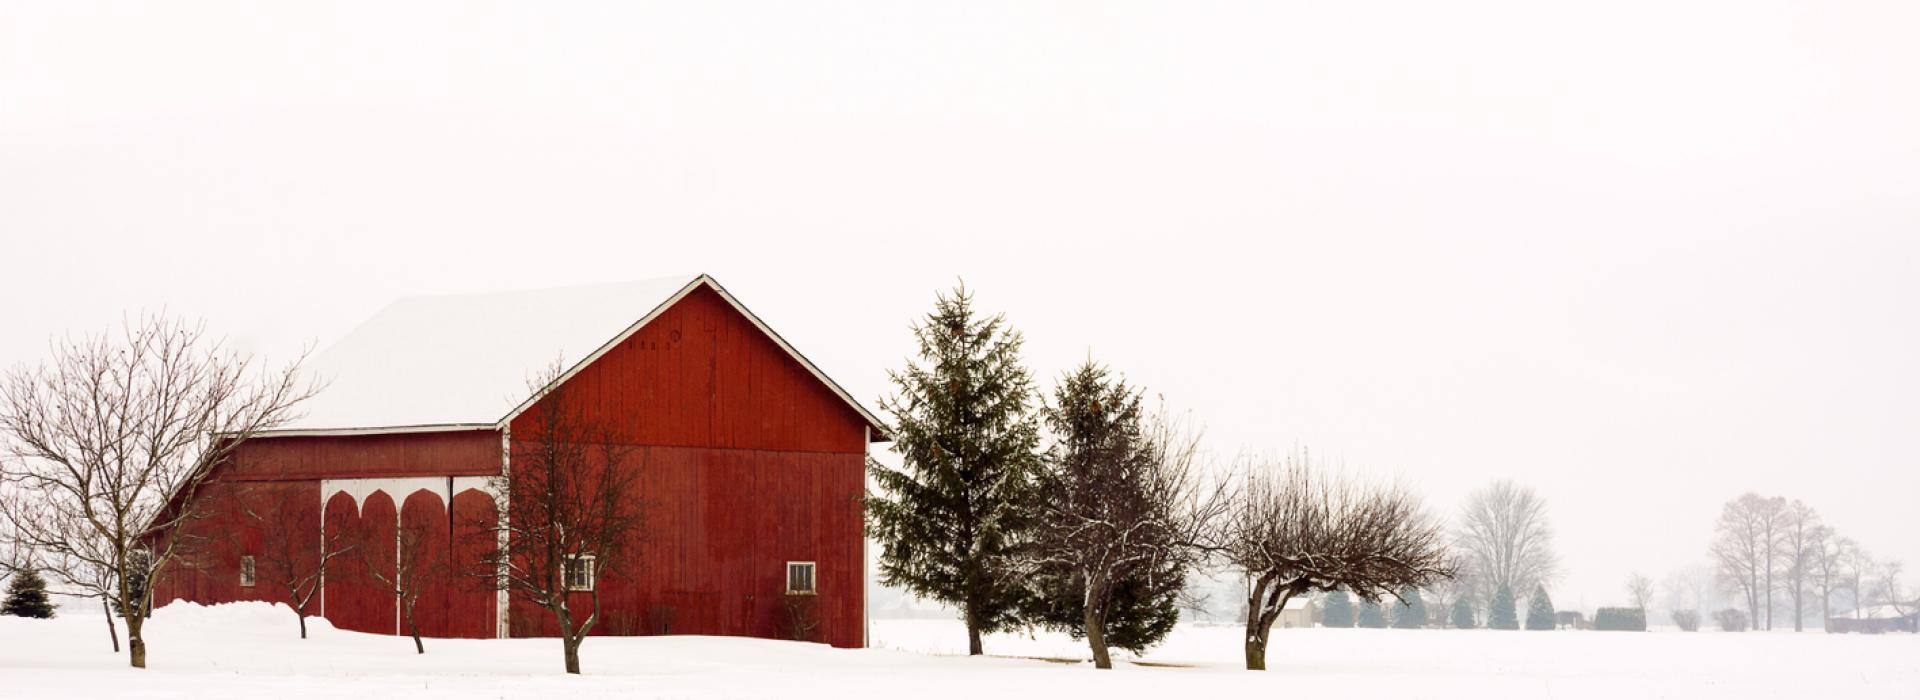 A red barn makes a peaceful landmark against green pines and newly fallen snow